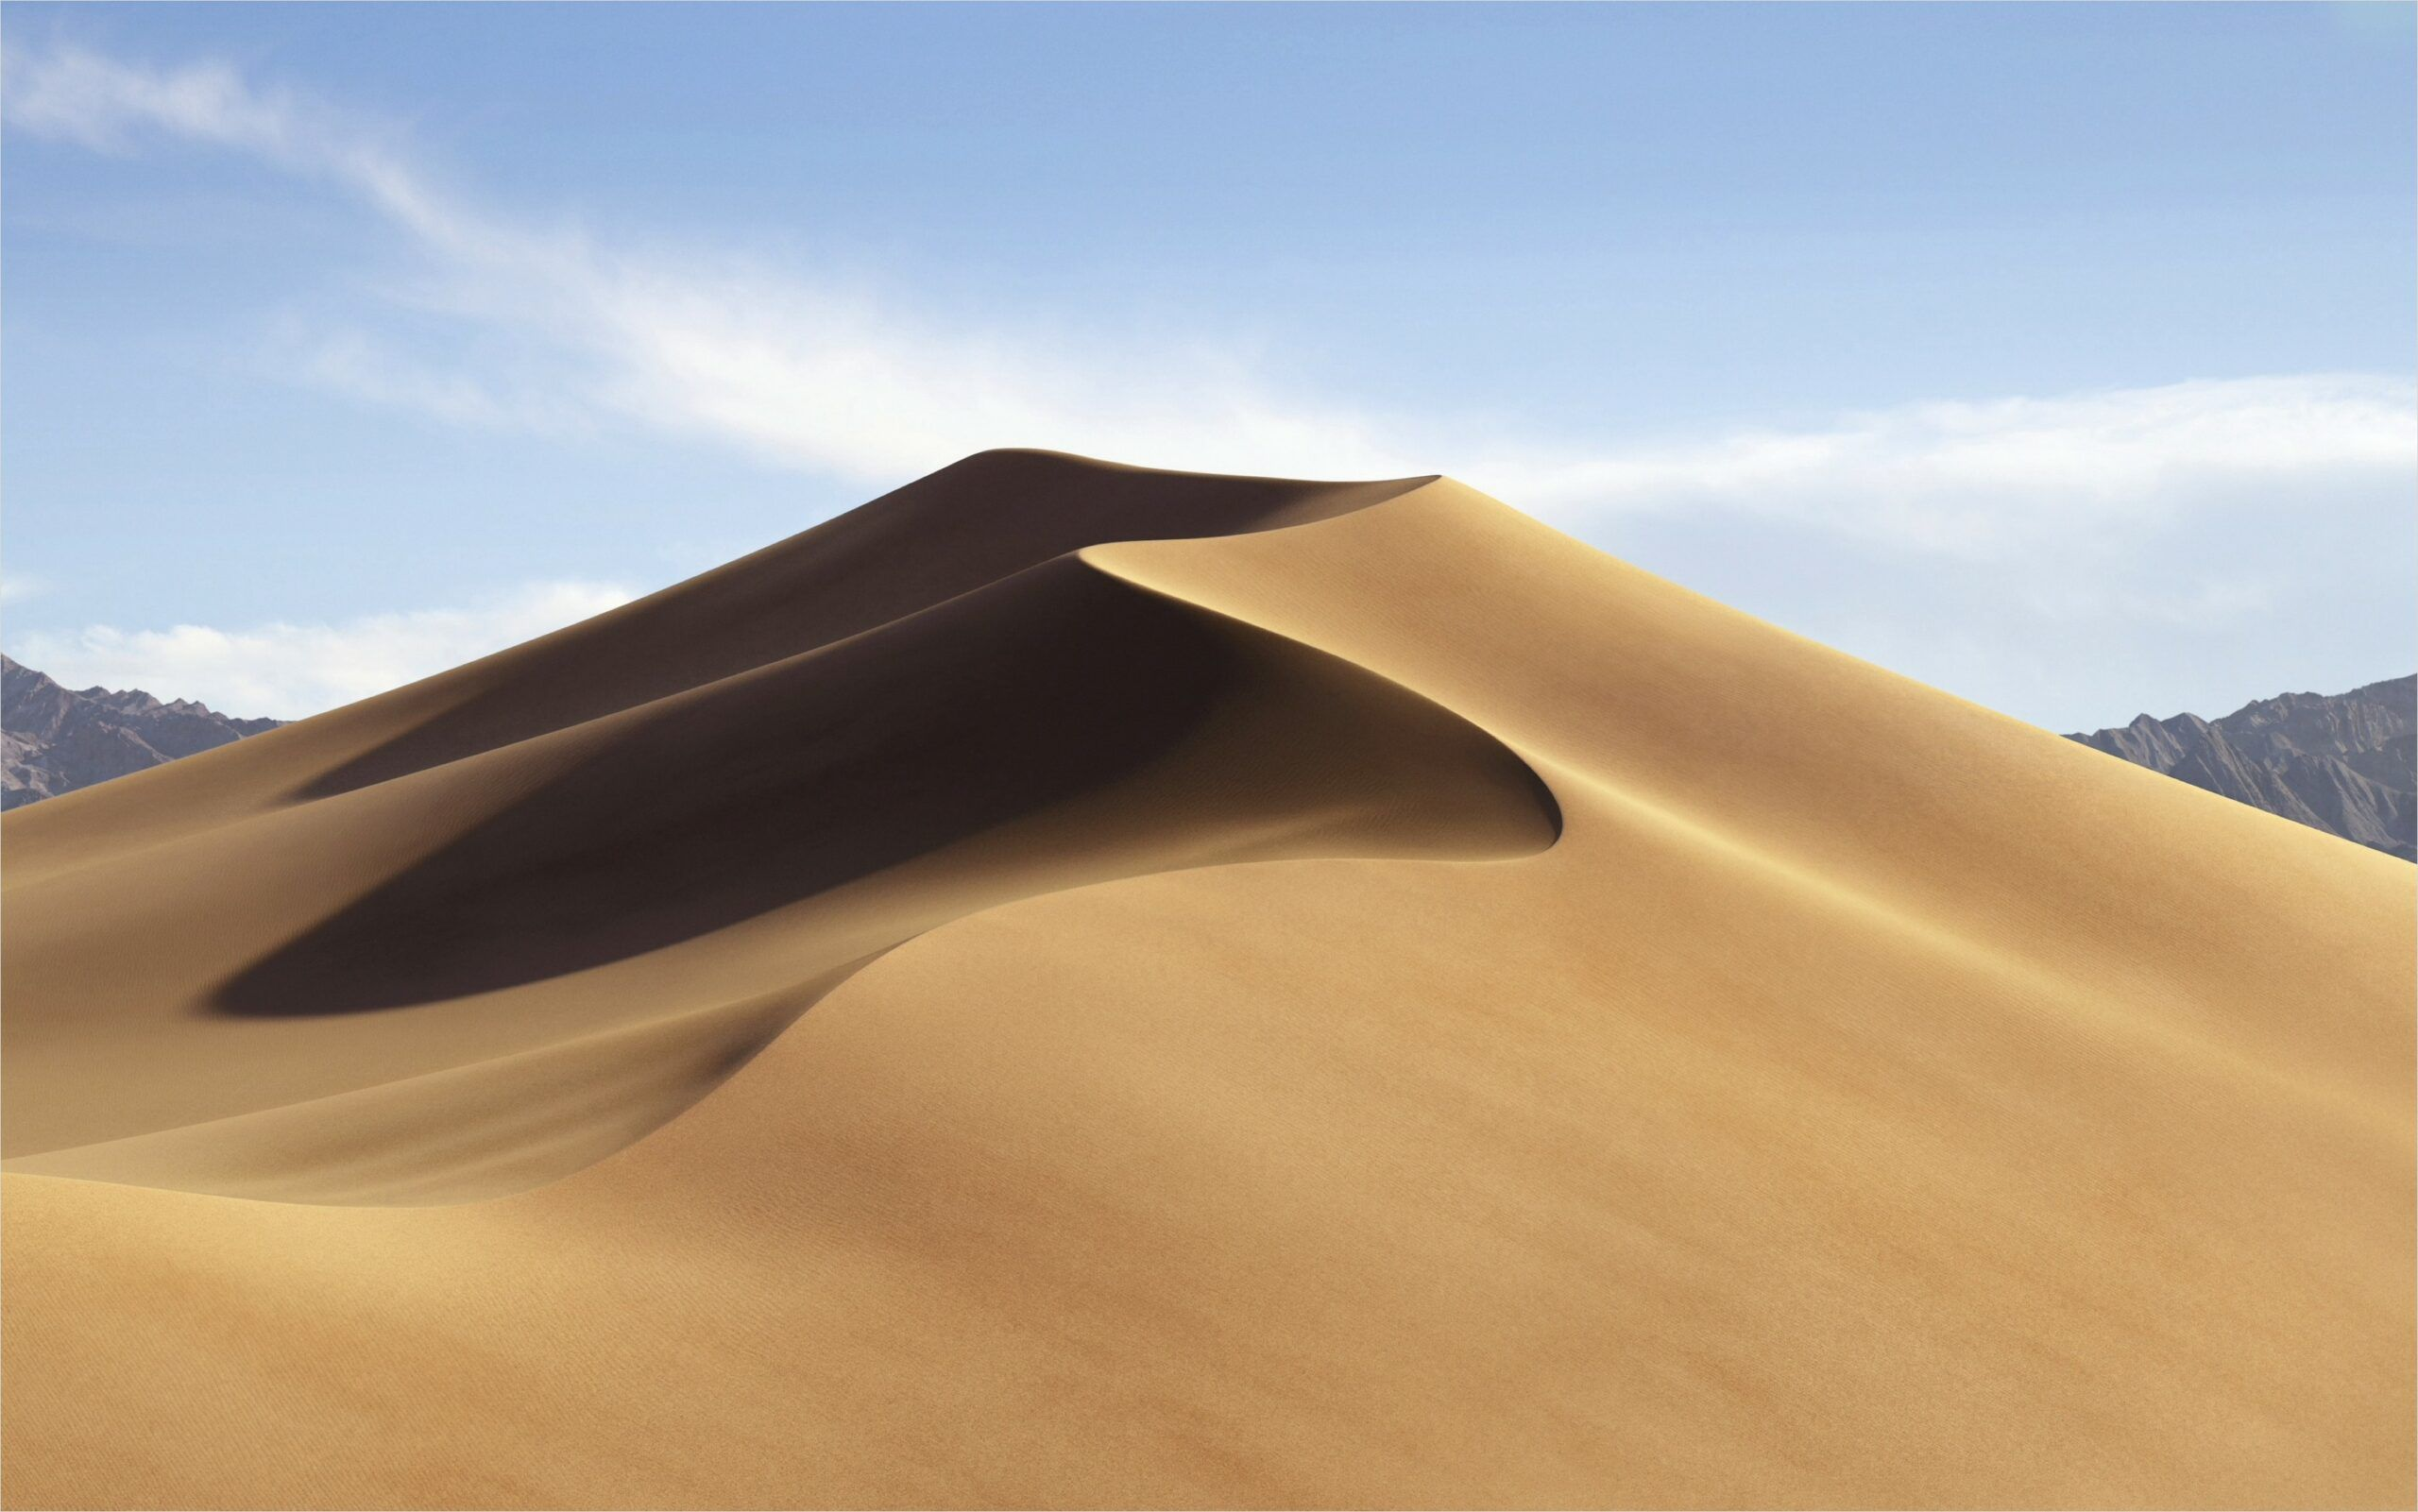 4k Wallpaper Mac Mojave In 2020 Mac App Store Mac Laptop Mojave